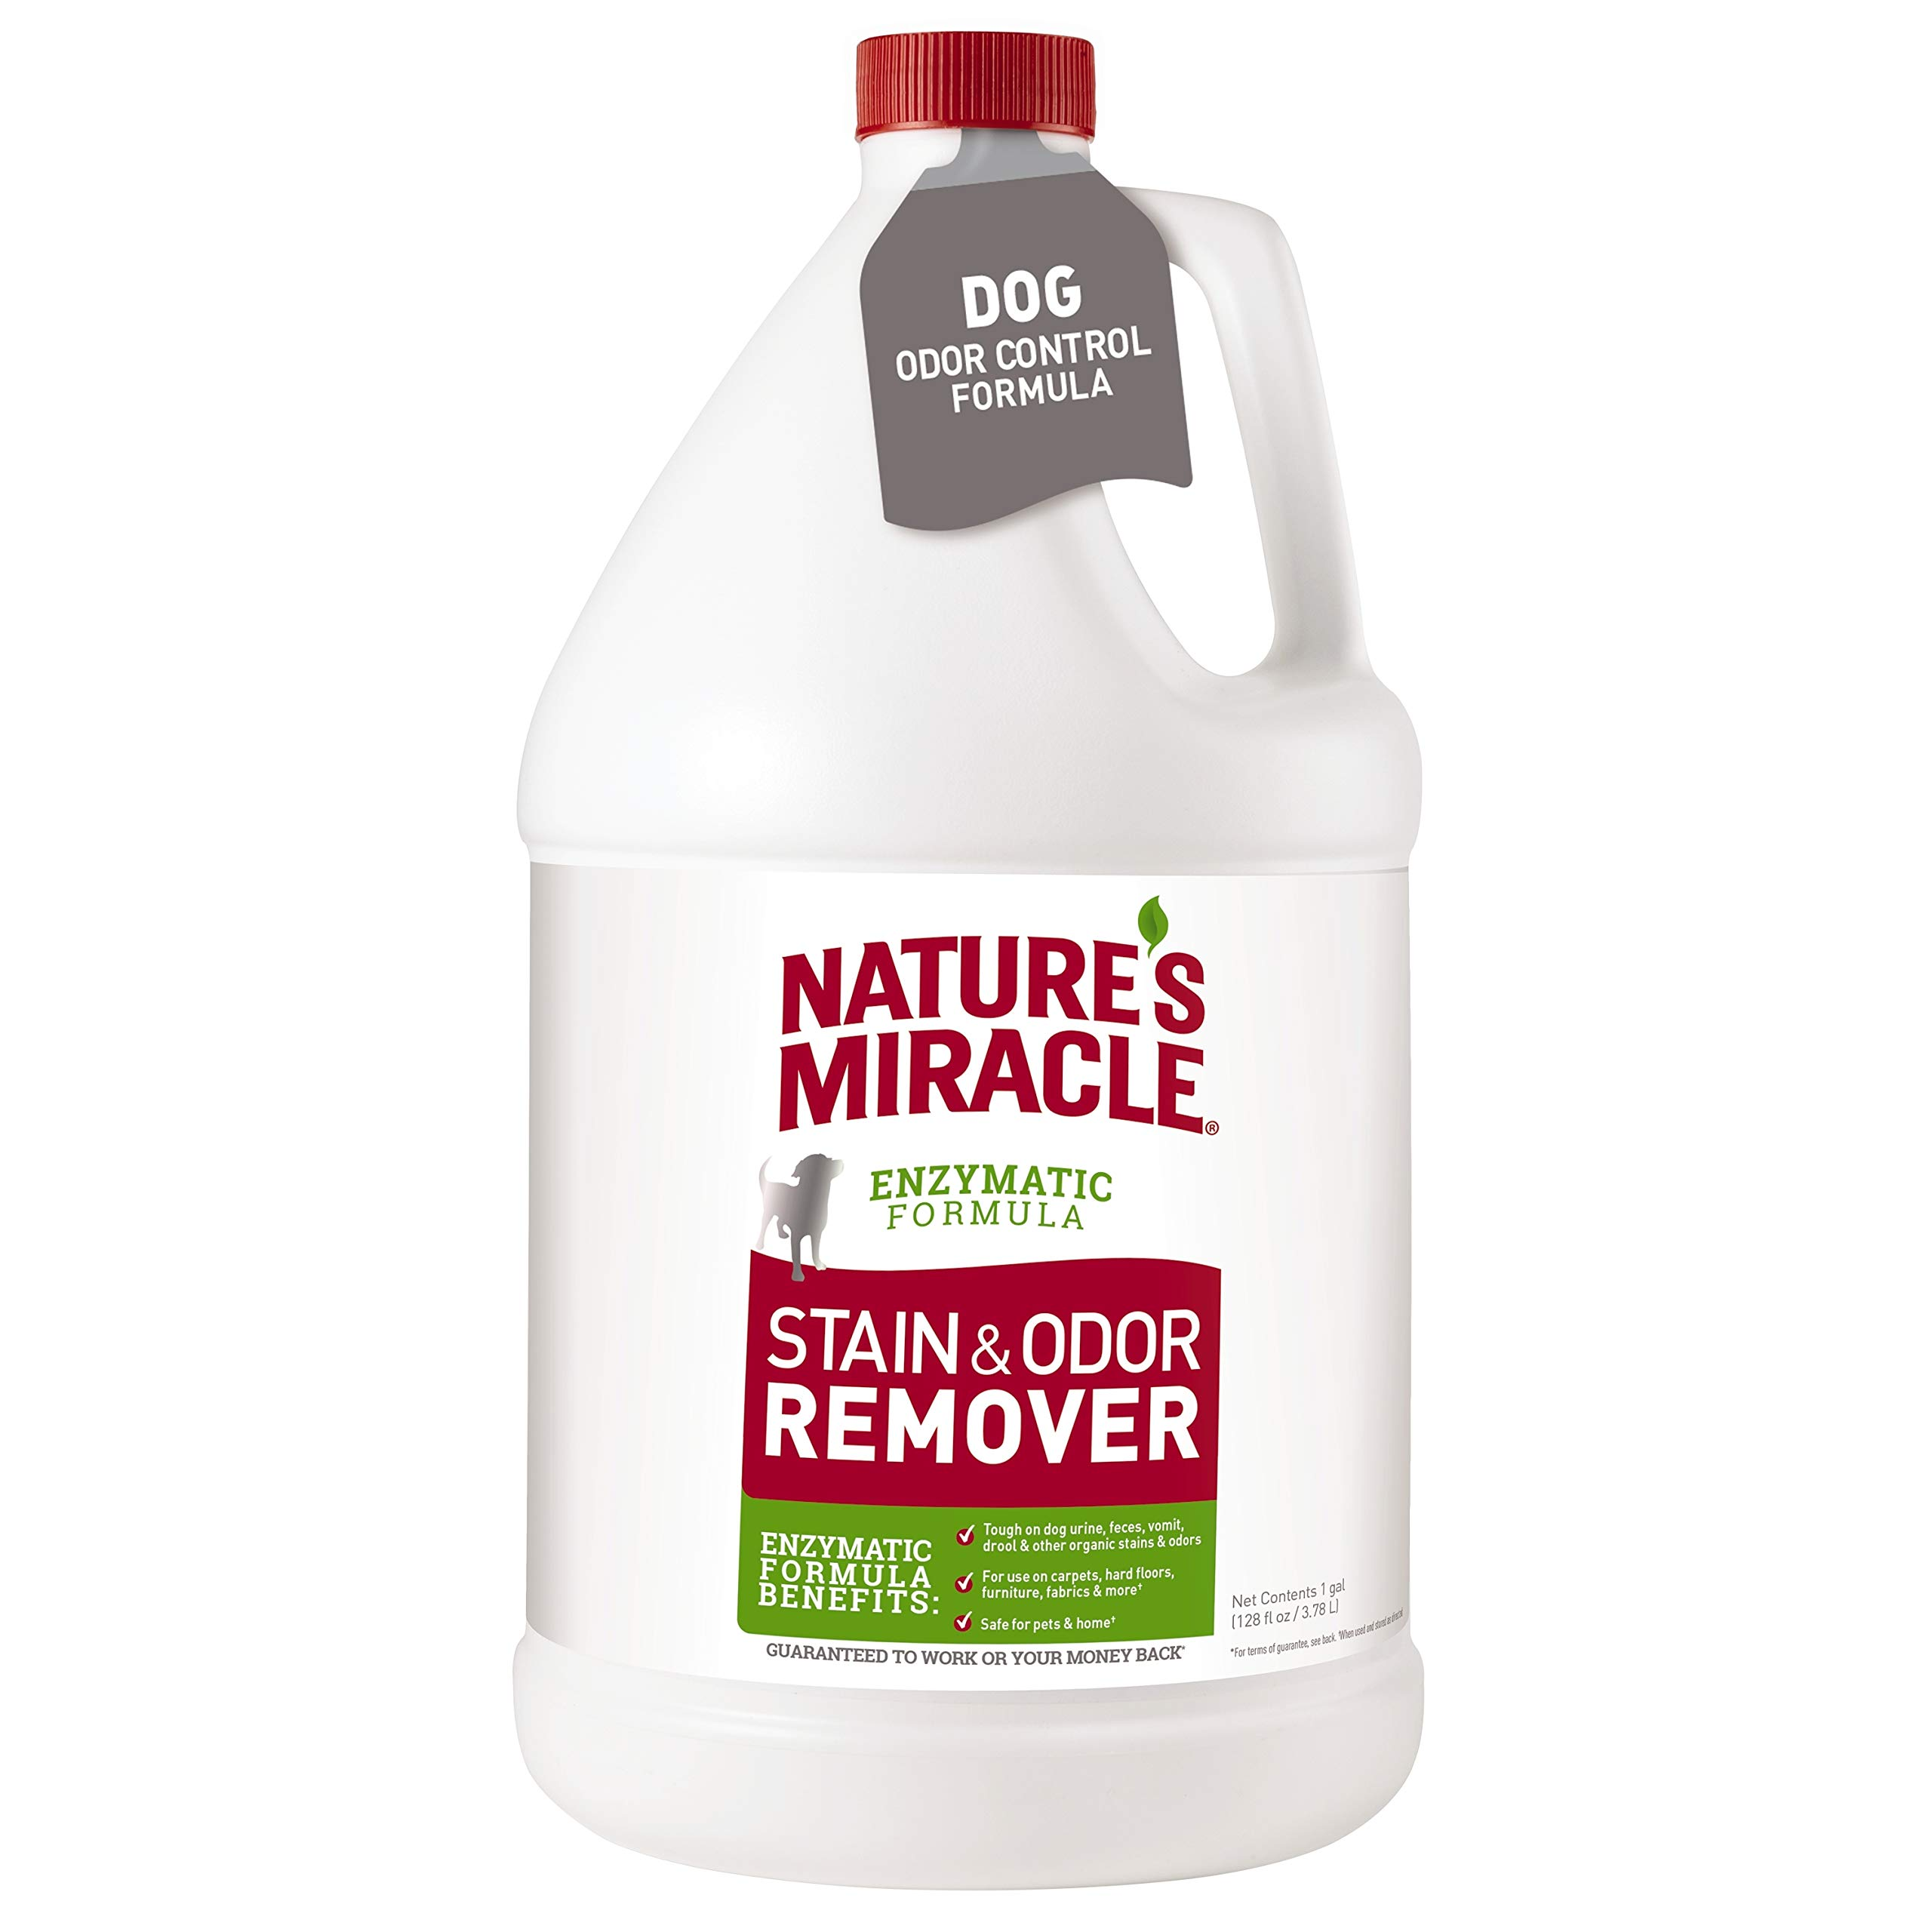 Nature's Miracle Stain and Odor Remover, Nature's Enzymatic Formula with Improved Odor Control, 1 Gallon by Nature's Miracle